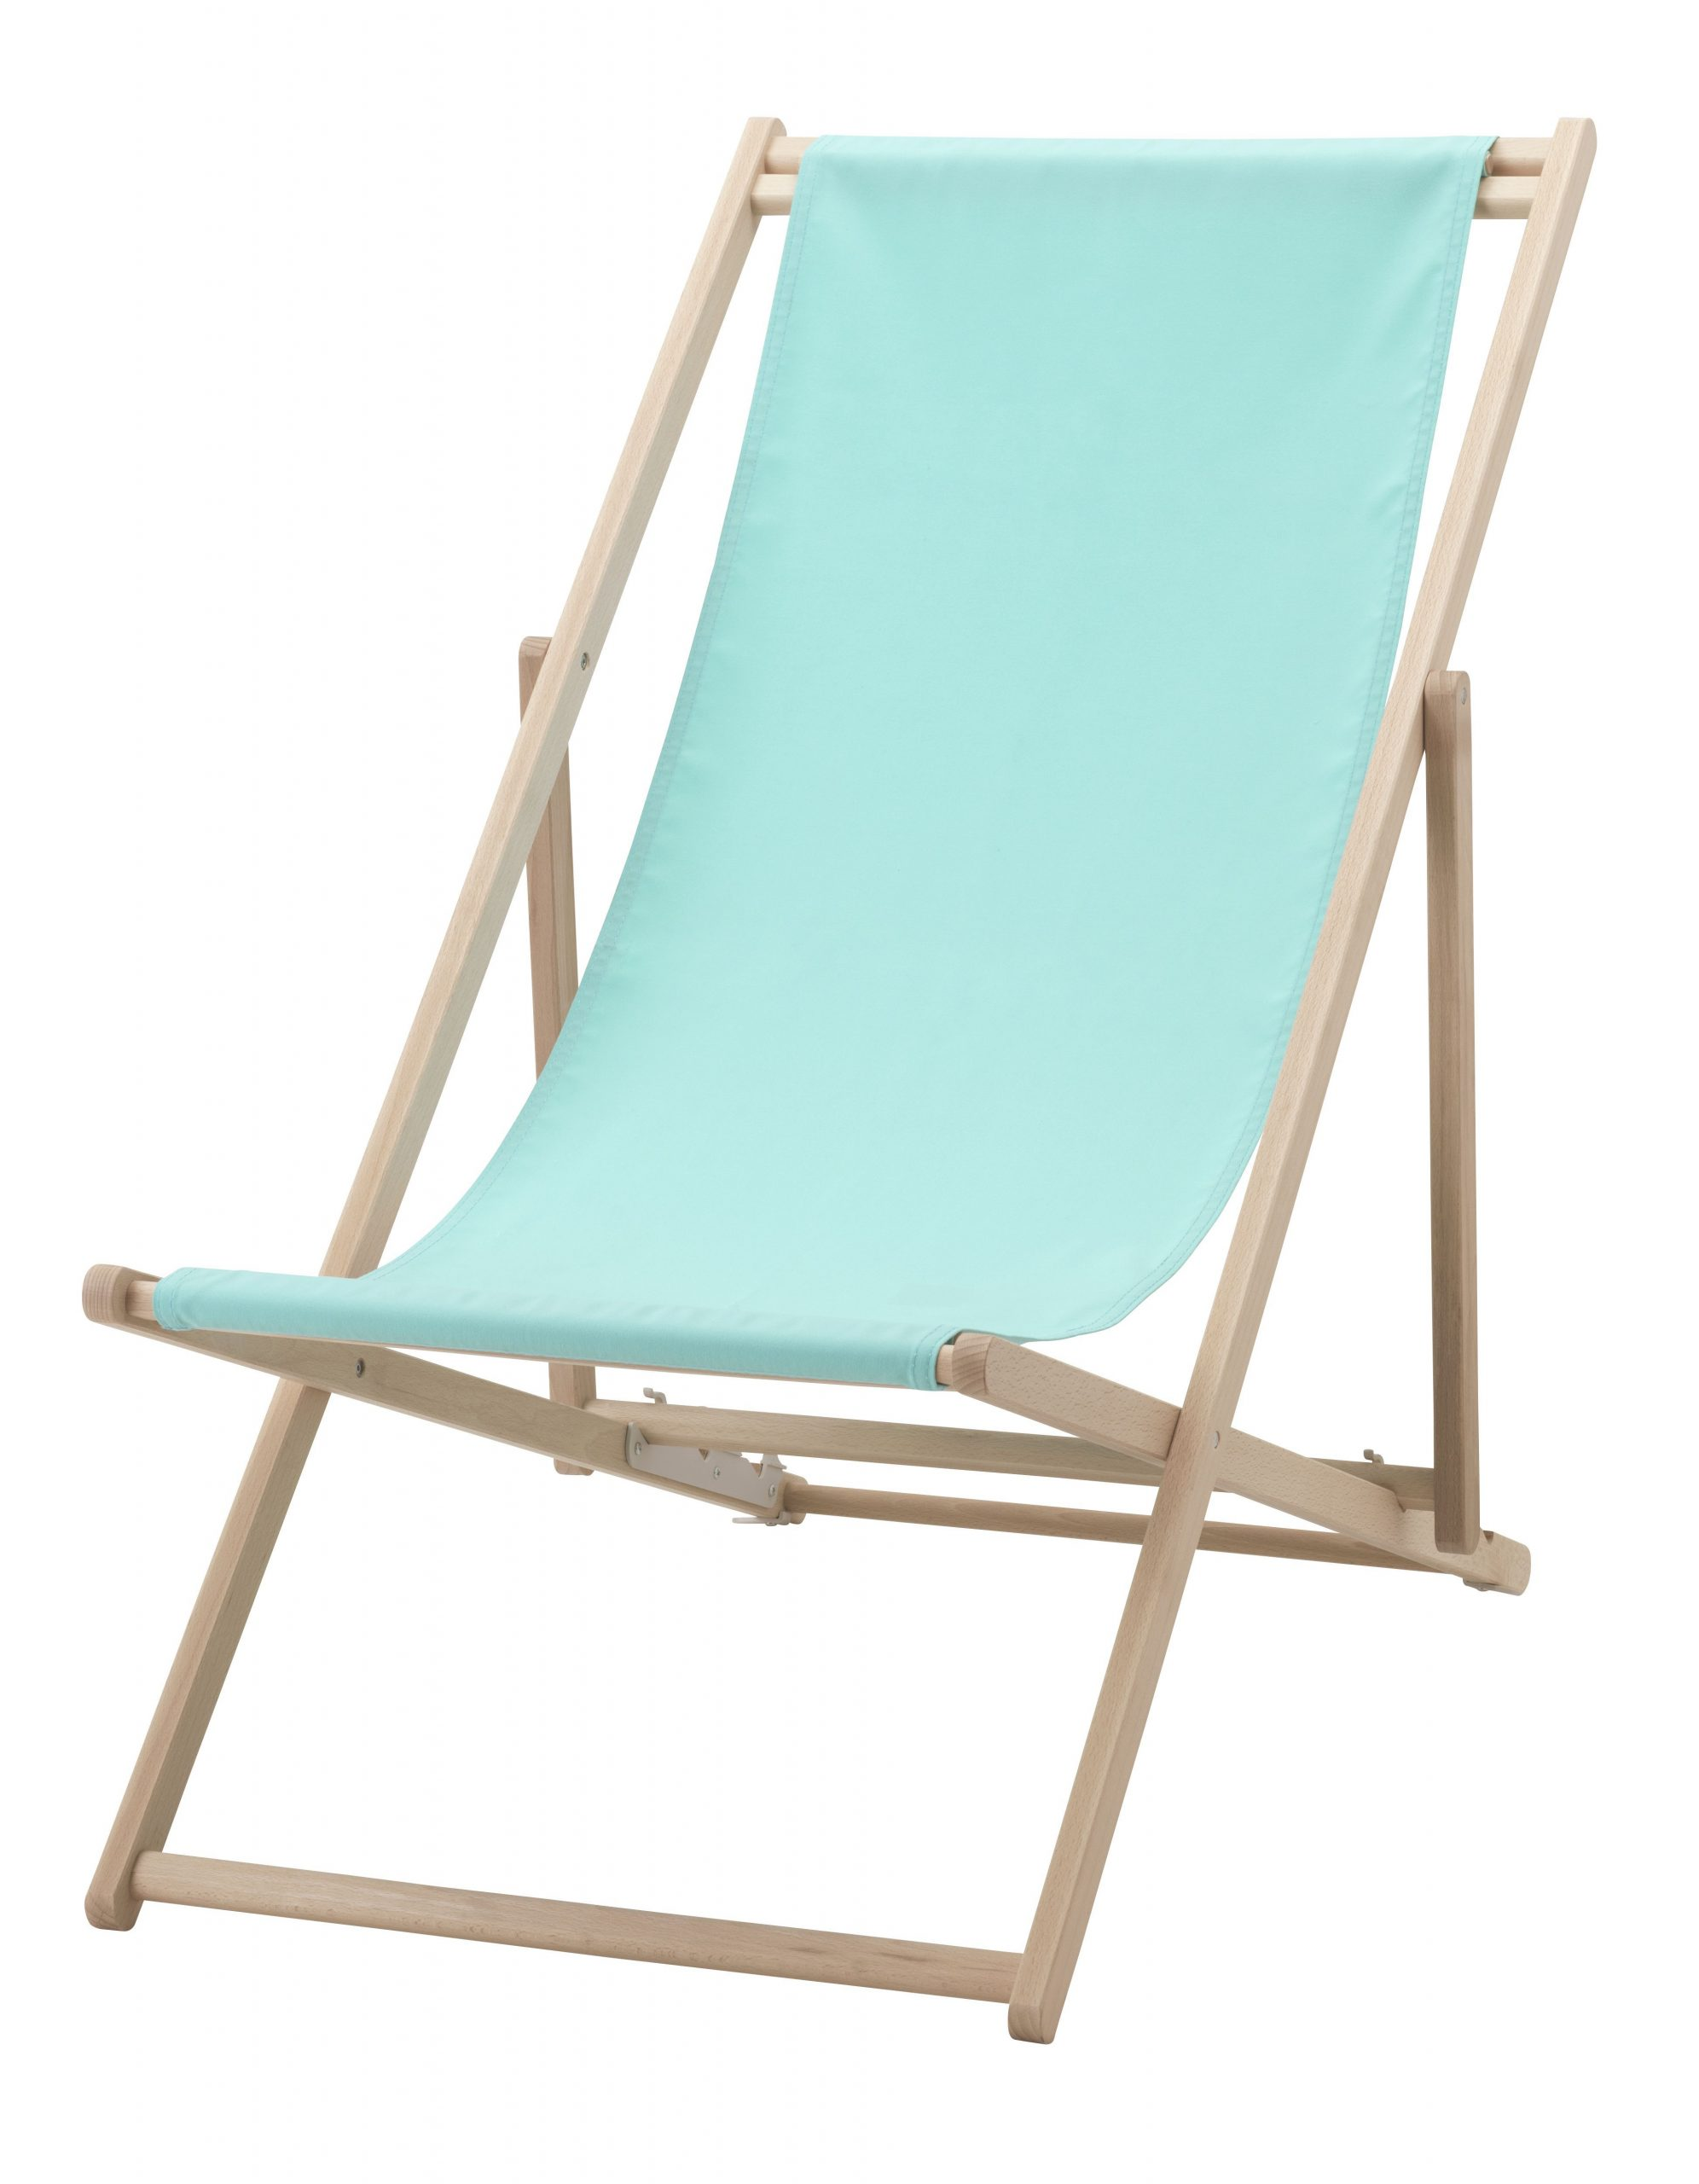 Ikea's New Summer Line Is Here To Make Us Wish Winter Would ... pour Ikea Transat